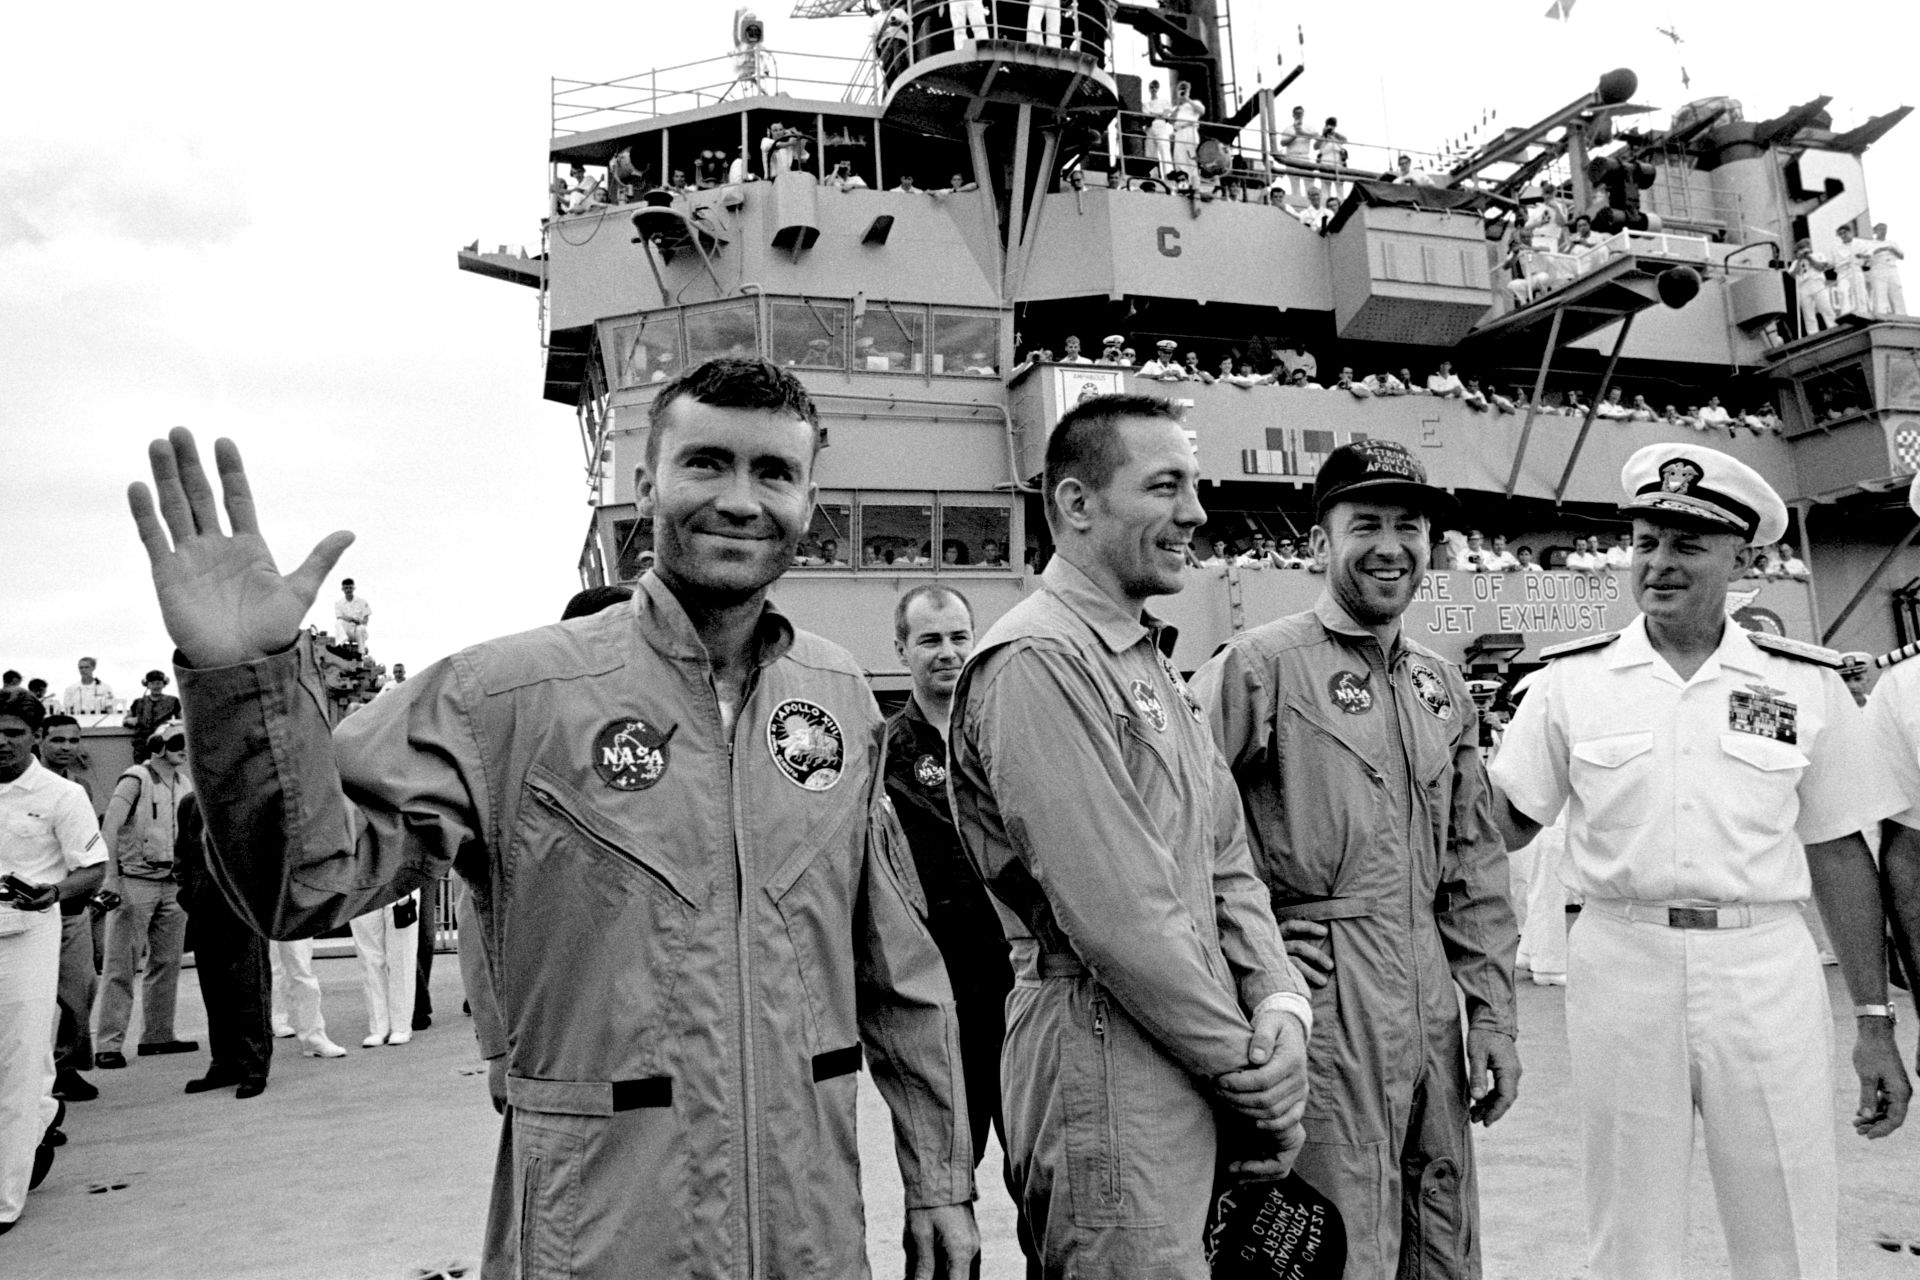 Apollo 13 Facts | Apollo 13 Mission Facts | DK Find Out